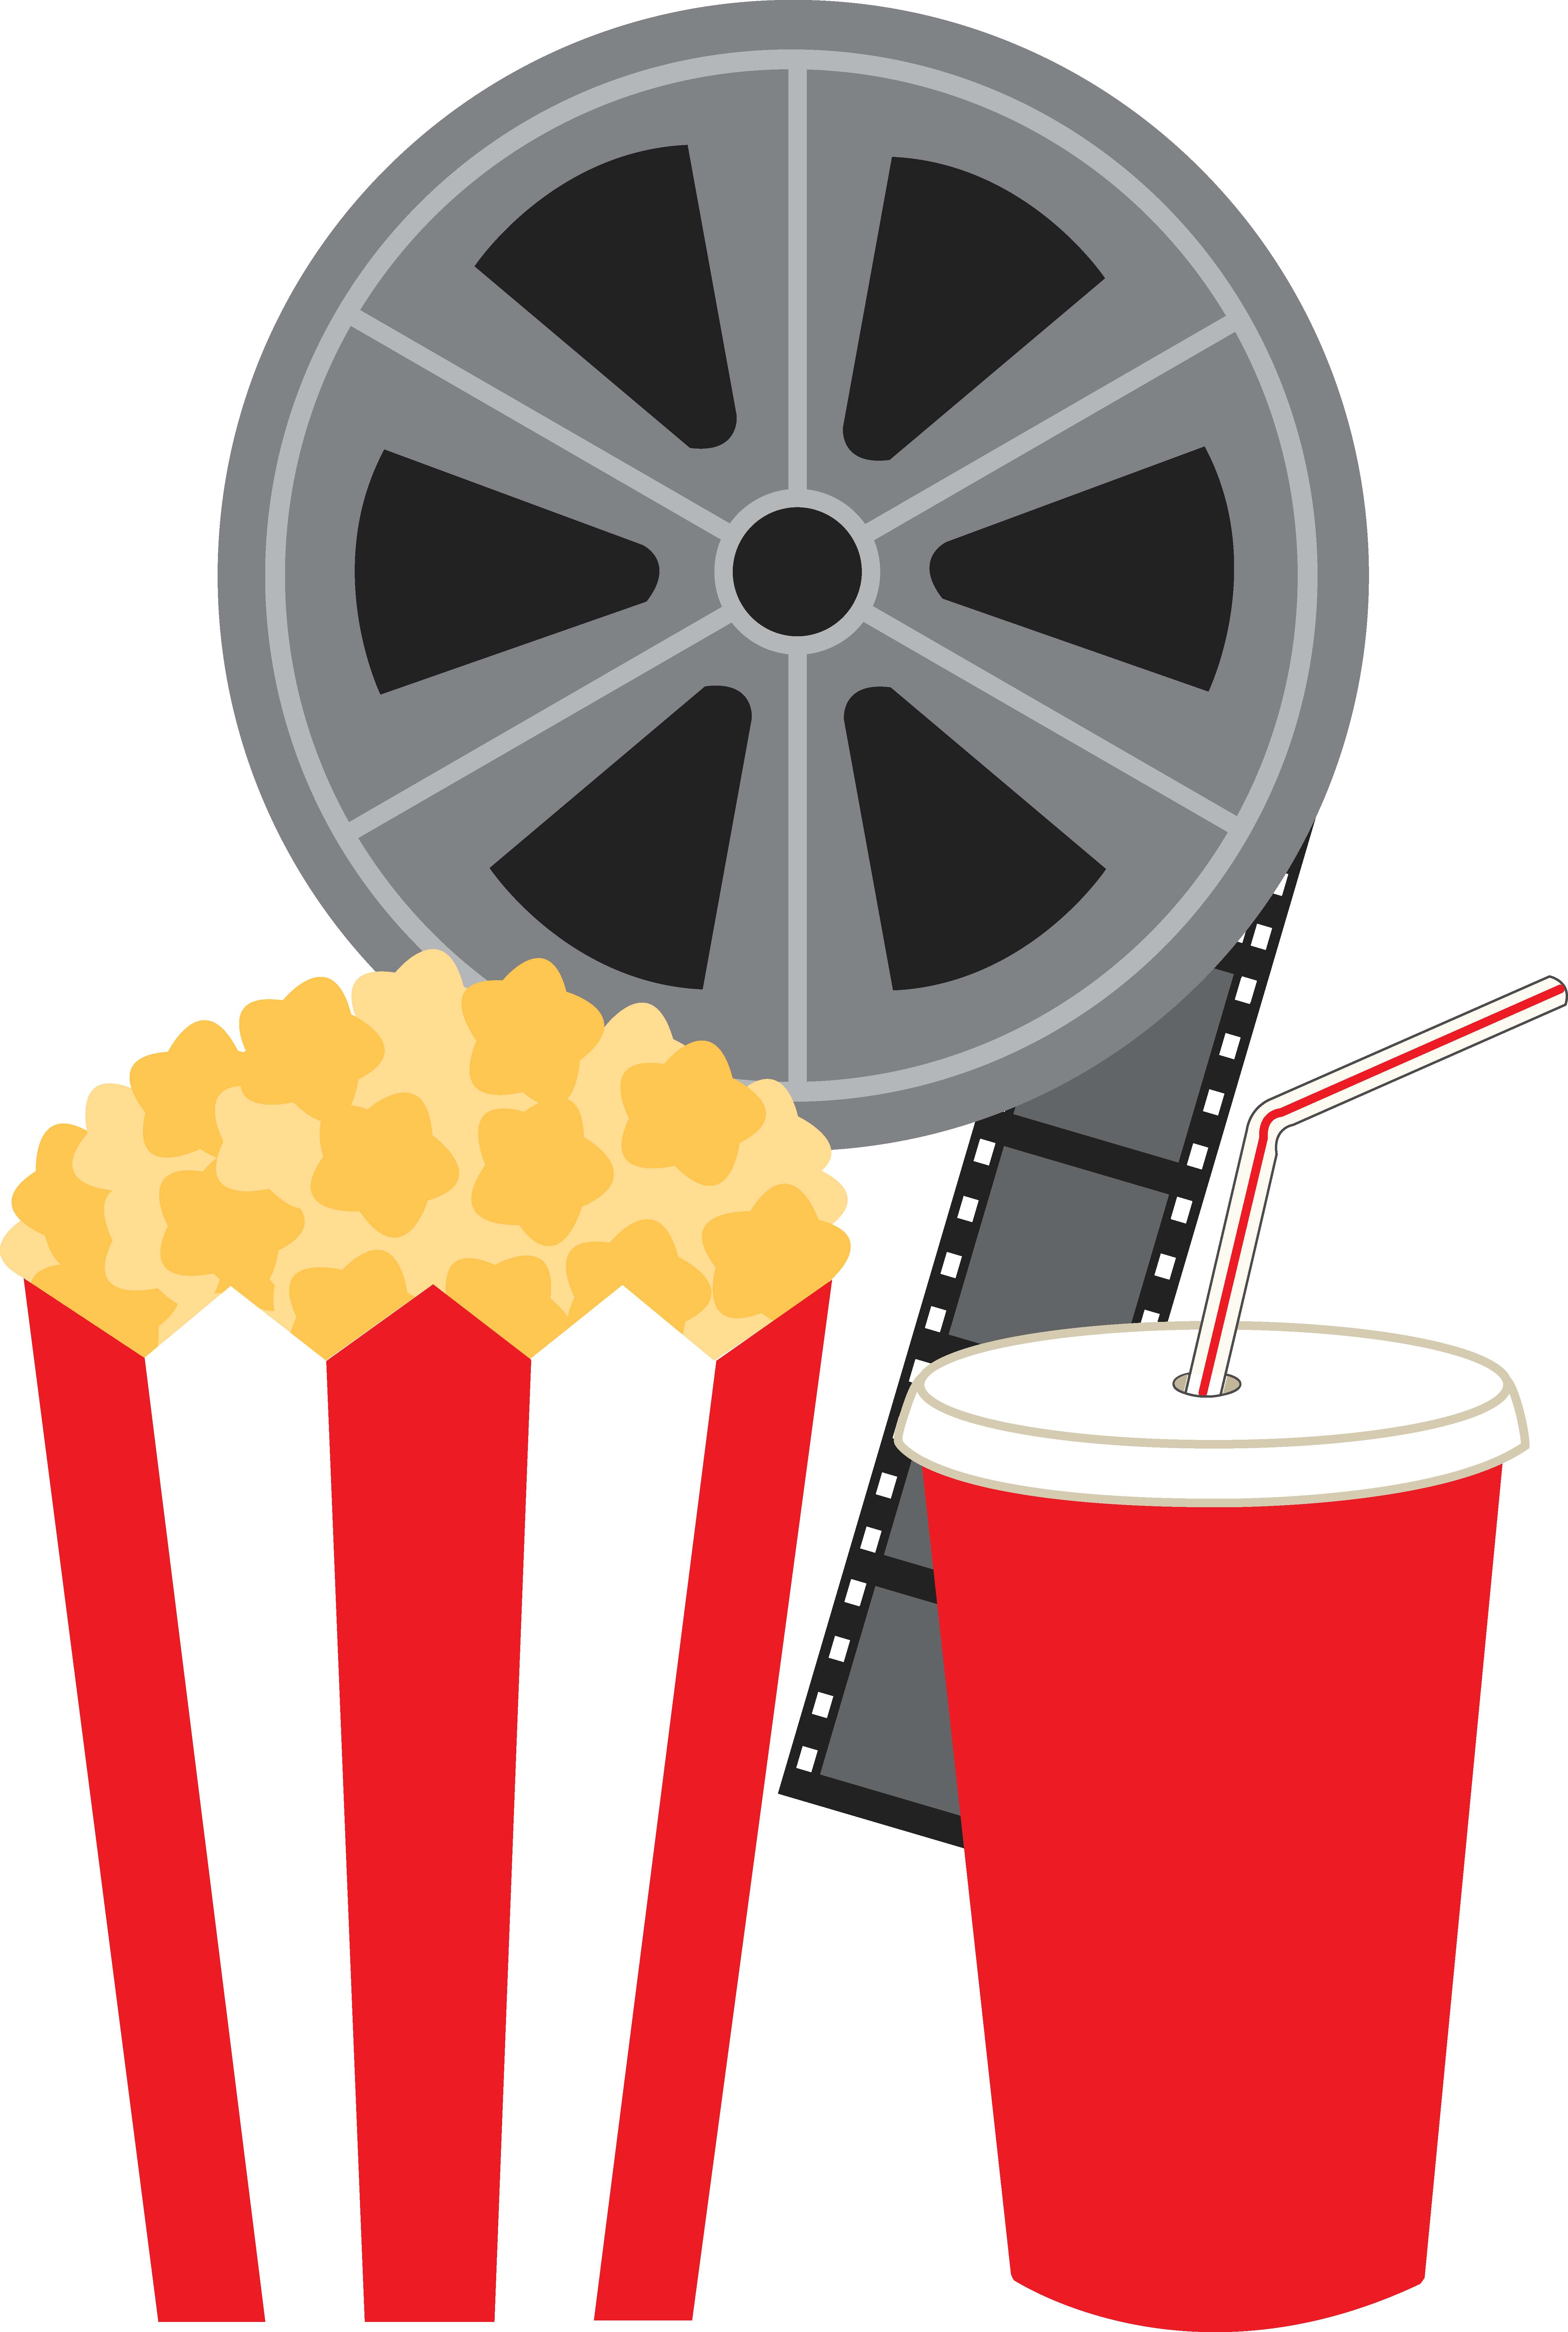 Baseball food clipart jpg library library Popcorn Kernel Clipart at GetDrawings.com | Free for personal use ... jpg library library